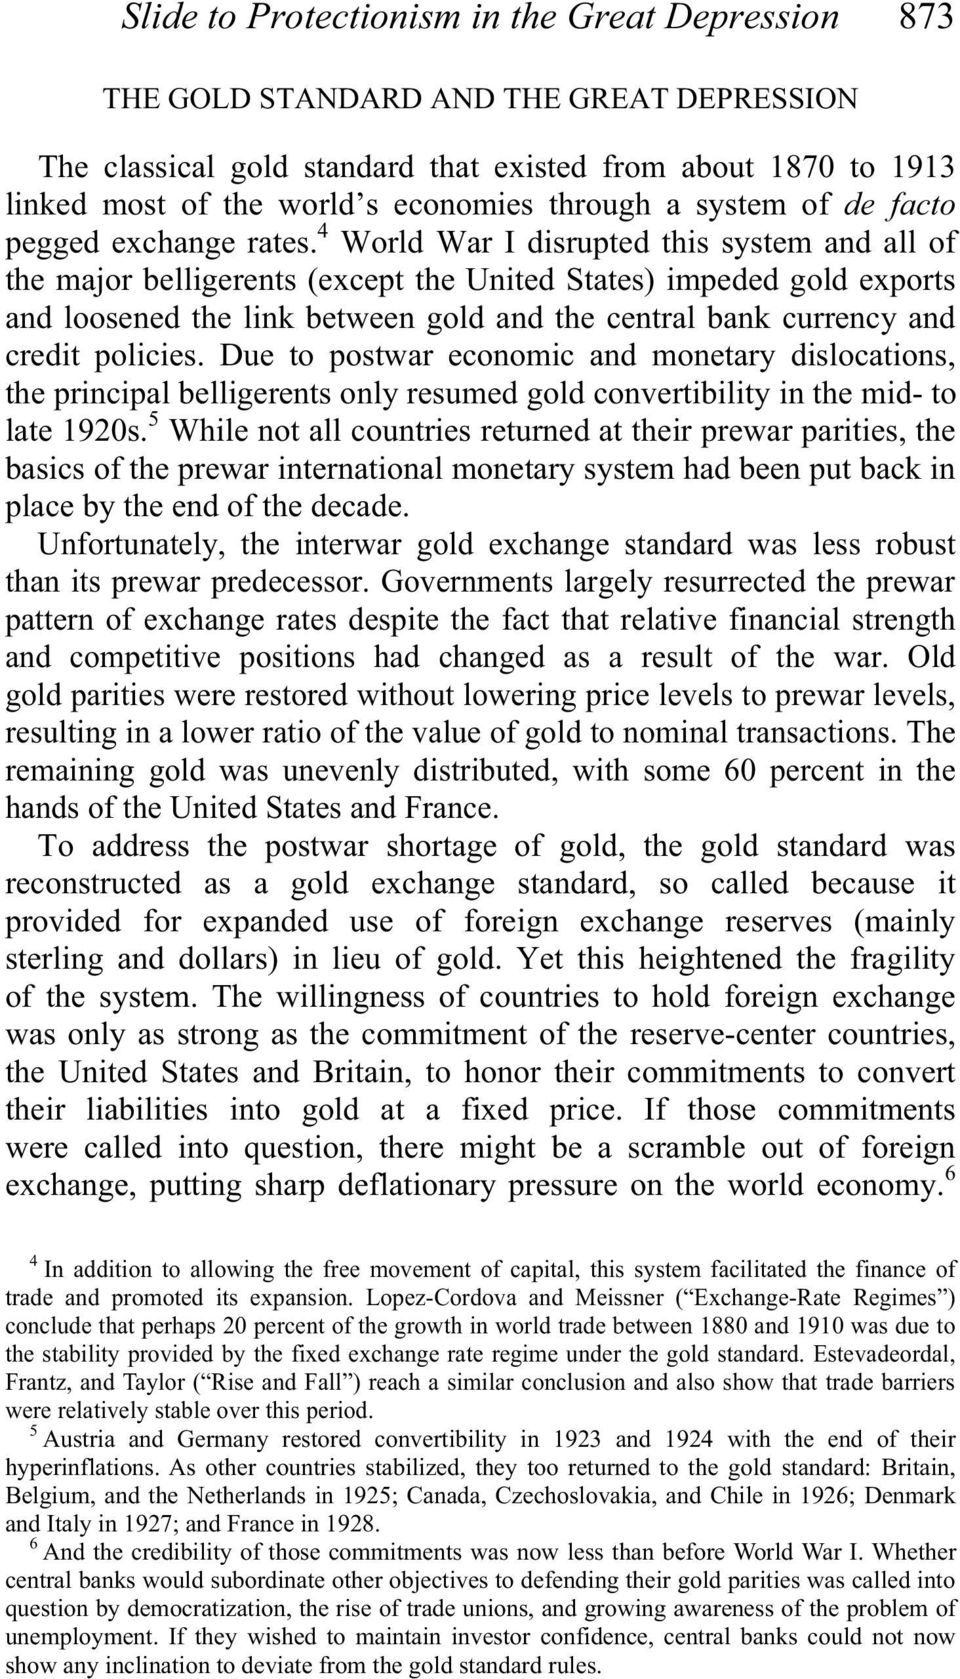 4 World War I disrupted this system and all of the major belligerents (except the United States) impeded gold exports and loosened the link between gold and the central bank currency and credit